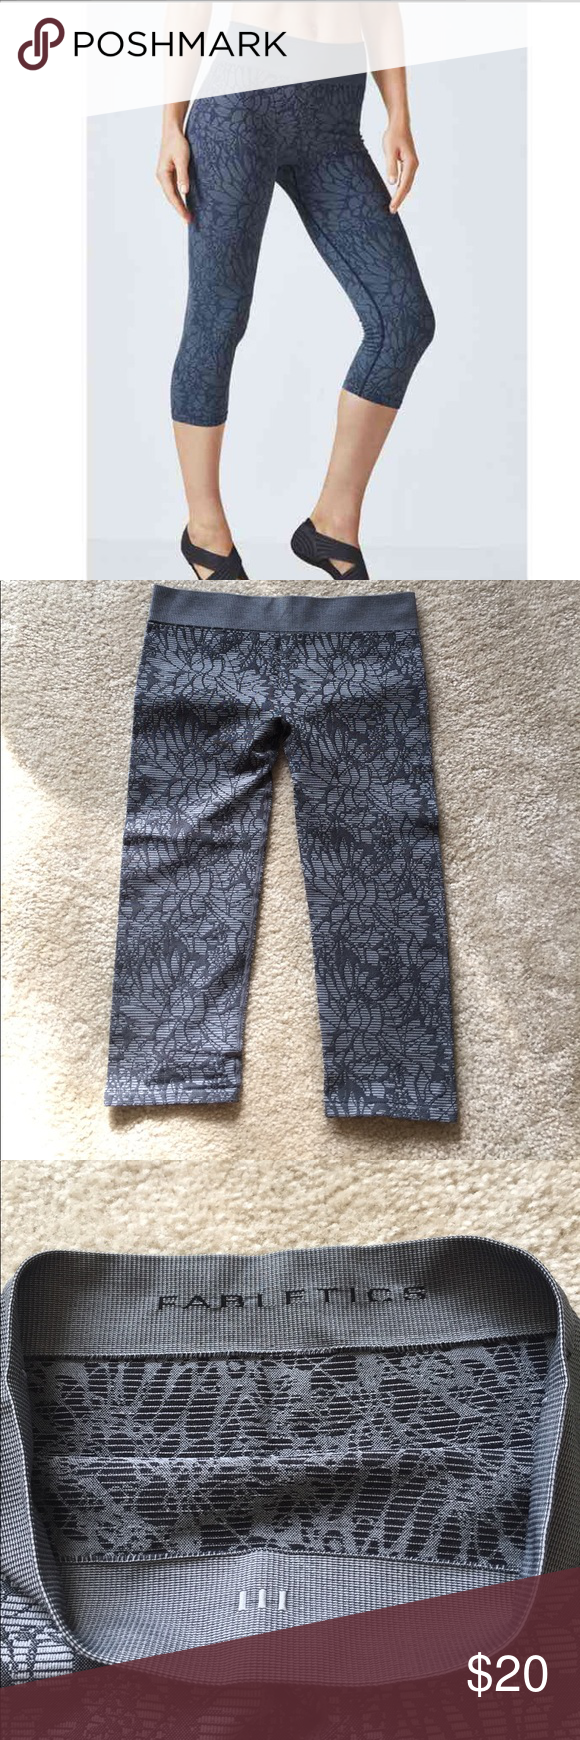 4cd1969b6e625b Fabletics Sebastian Seamless Tight Excellent condition, size small. Seamless  Crop tights. Super comfy for working out. Smoke free home.